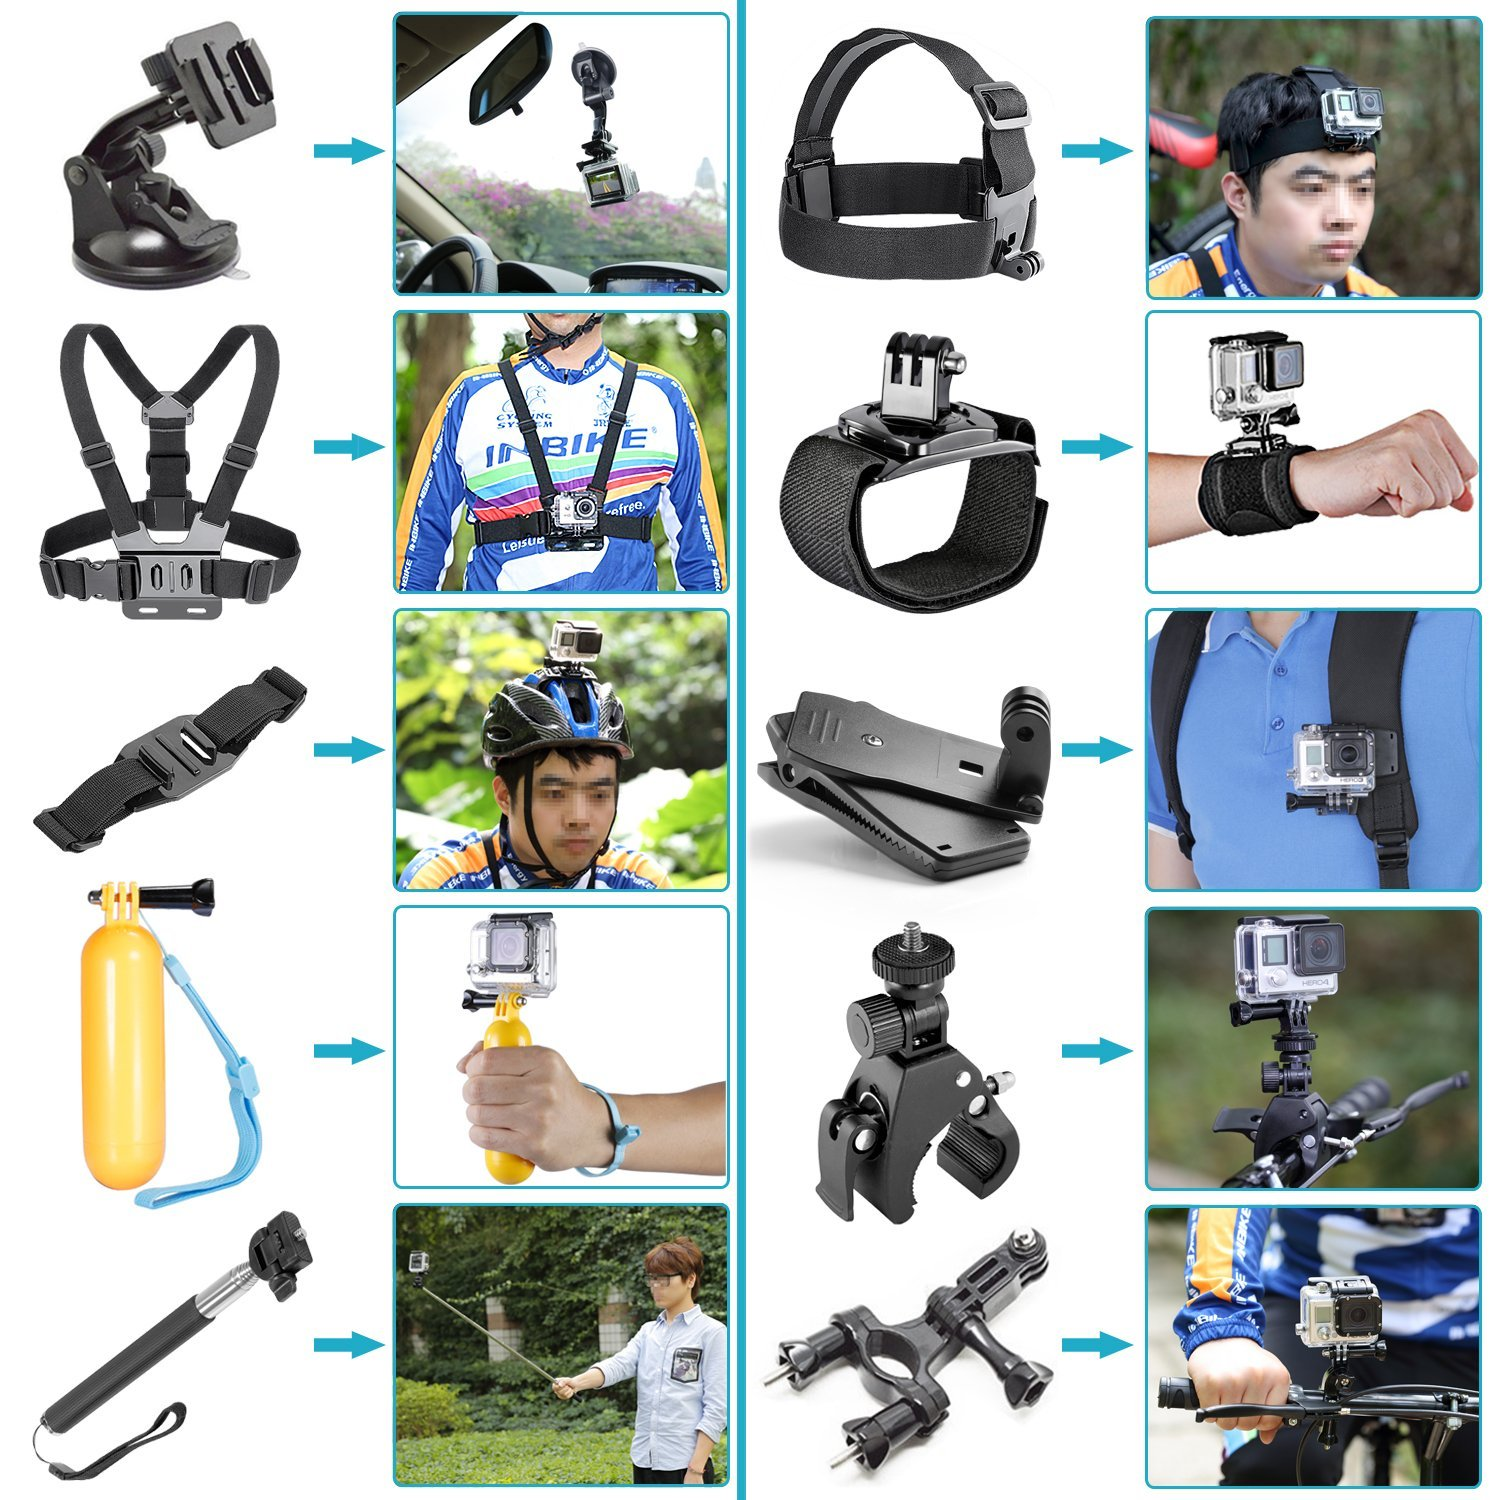 CES-48-In-1 Sport Accessory Kit for GoPro Hero4 Session Hero series for Xiaomi Yi in Skiing Climbing Bike Camping Diving and CES